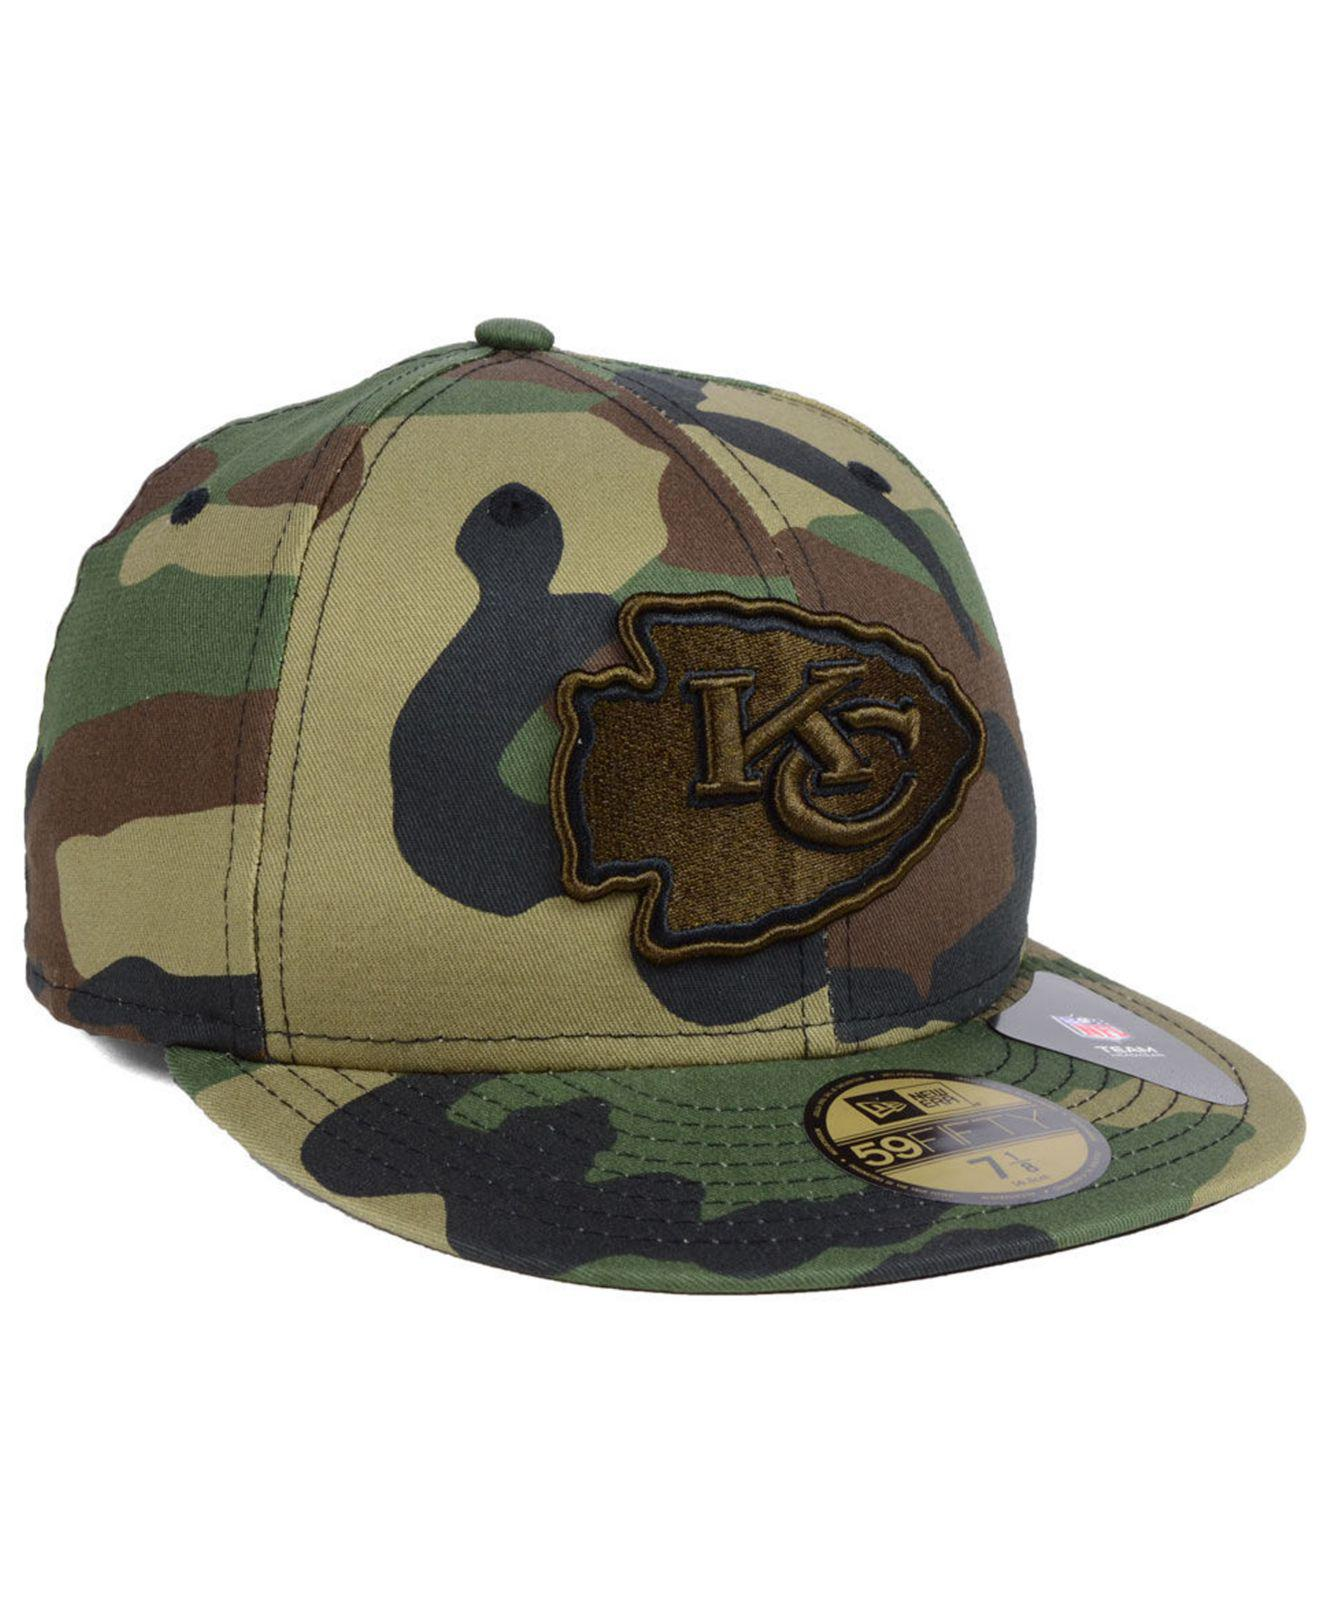 online store 0903a a9192 ... new zealand kansas city chiefs woodland prism pack 59fifty fitted cap  for men . view fullscreen